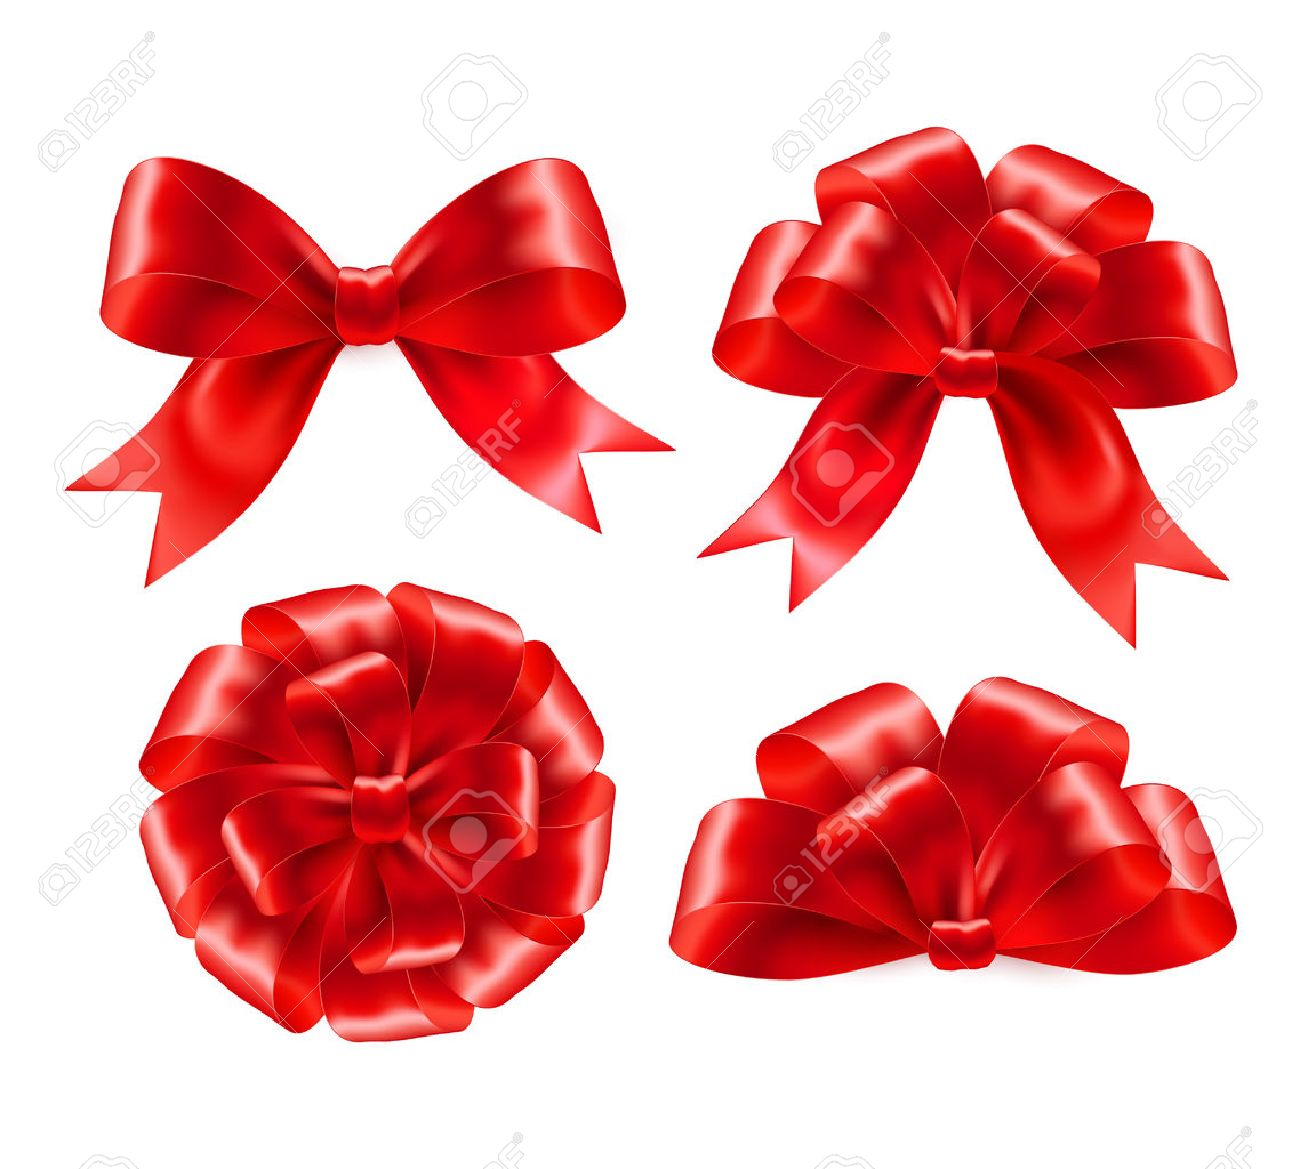 Set of red gift bows with ribbons vector illustration eps 10 set of red gift bows with ribbons vector illustration eps 10 stock vector 46601864 negle Images